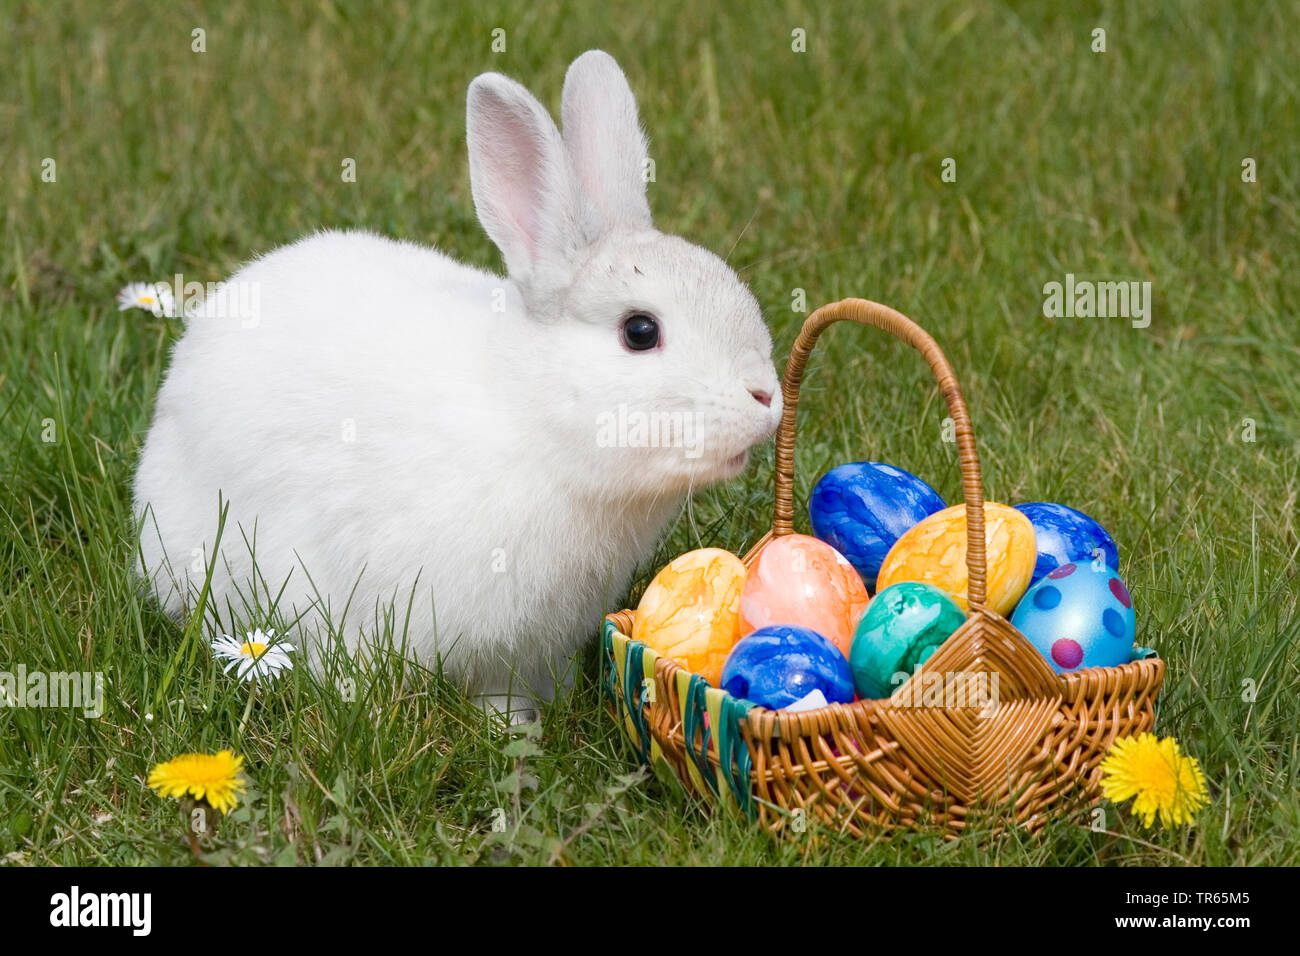 domestic rabbit (Oryctolagus cuniculus f. domestica), easter bunny with nest and eggs, Germany Stock Photo